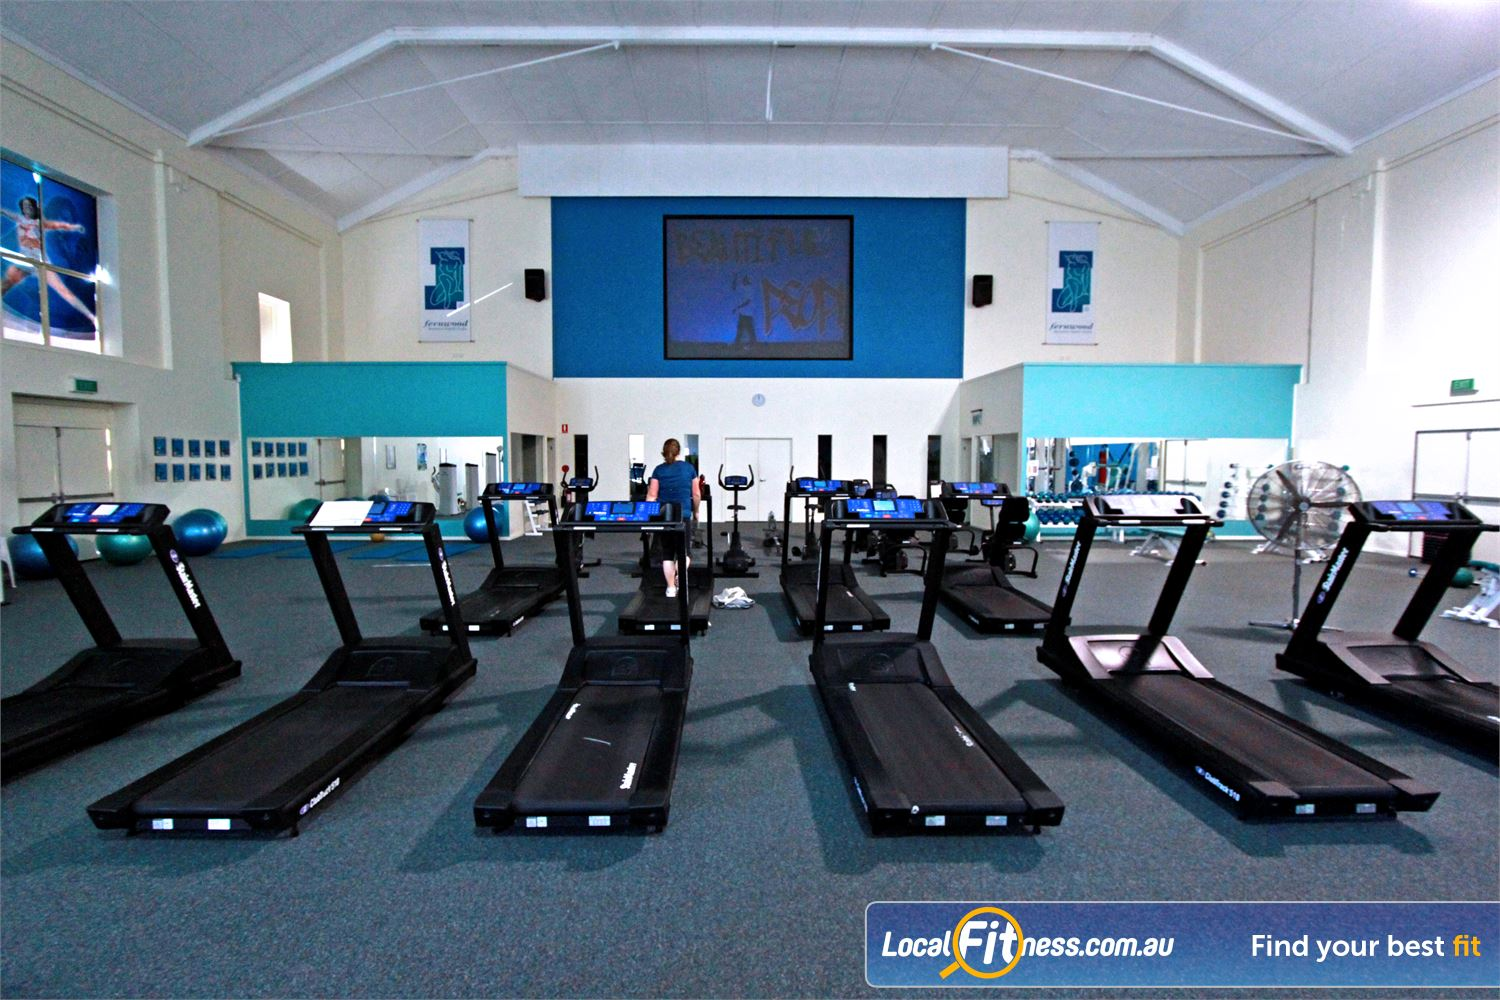 Fernwood Fitness Near East Corrimal Our Woonona gym provides a unique cardio theatre experience.